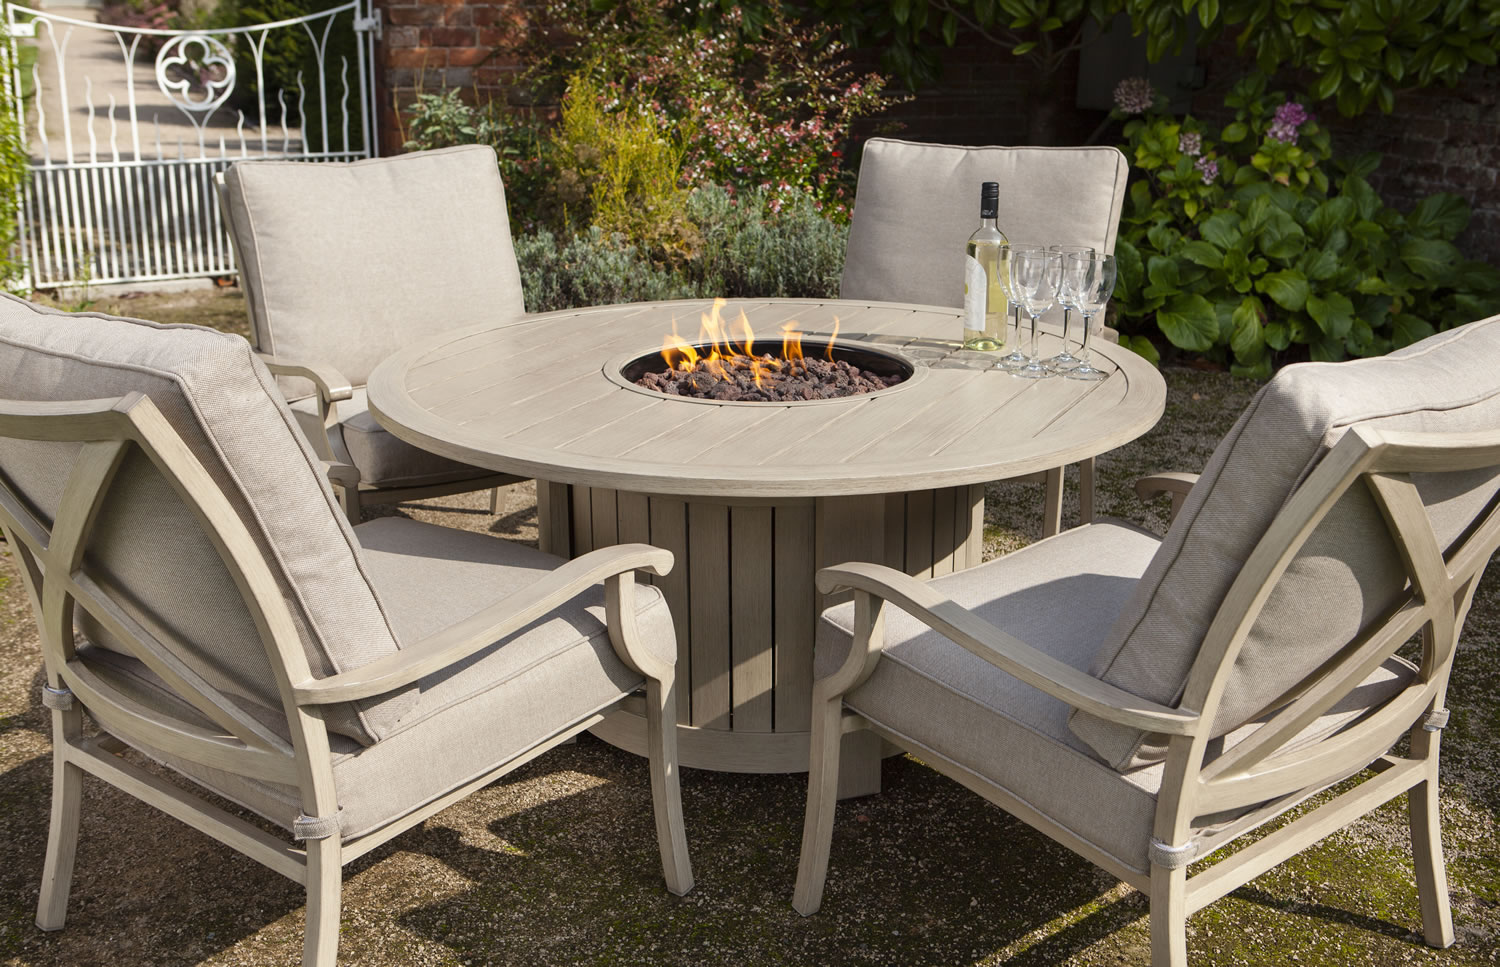 Portland Round 4 Seater Lounge Set With Fire Pit 143900 At Garden4less UK